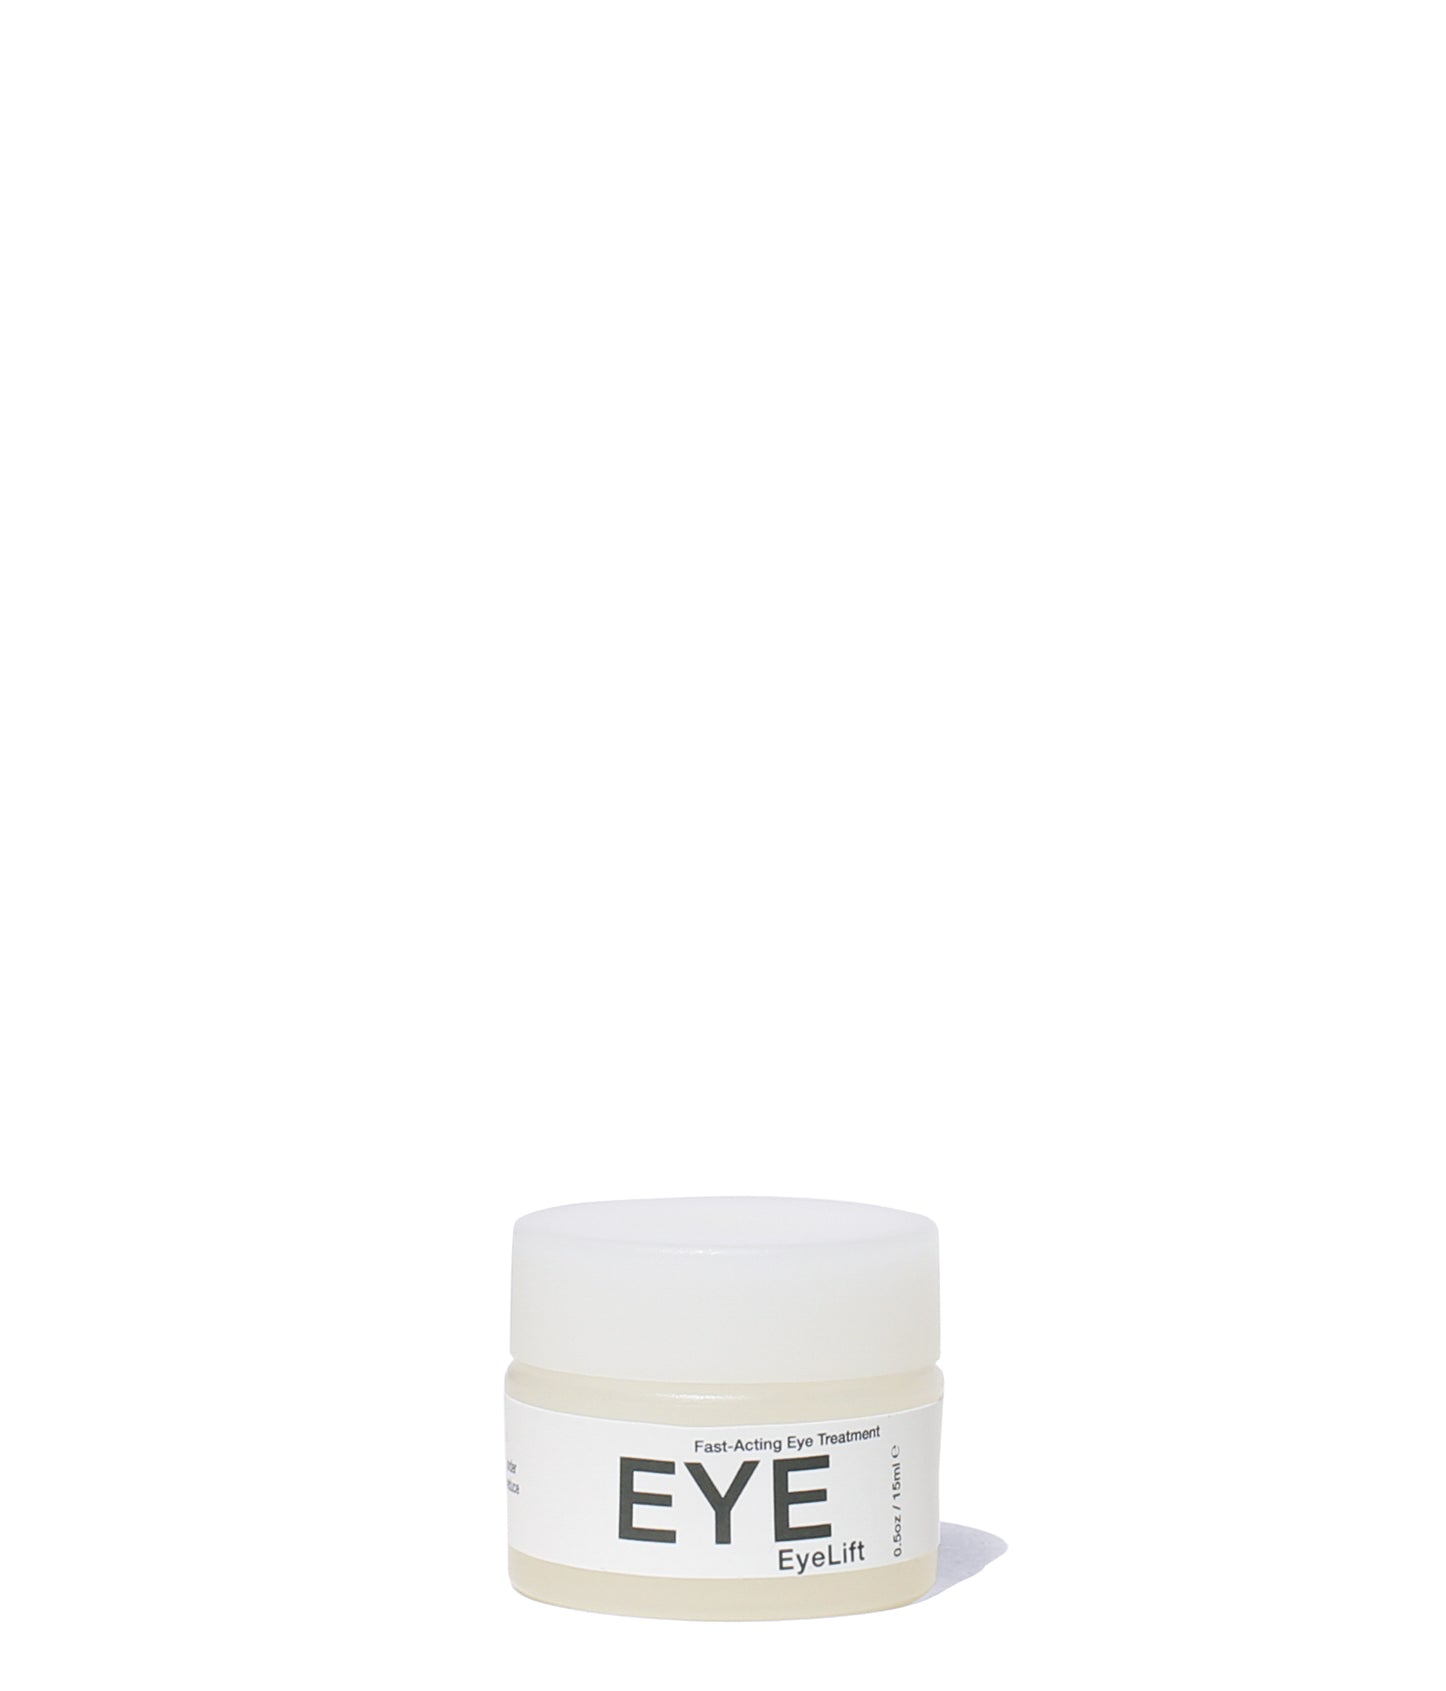 EyeLift | Fast-Acting Eye Cream